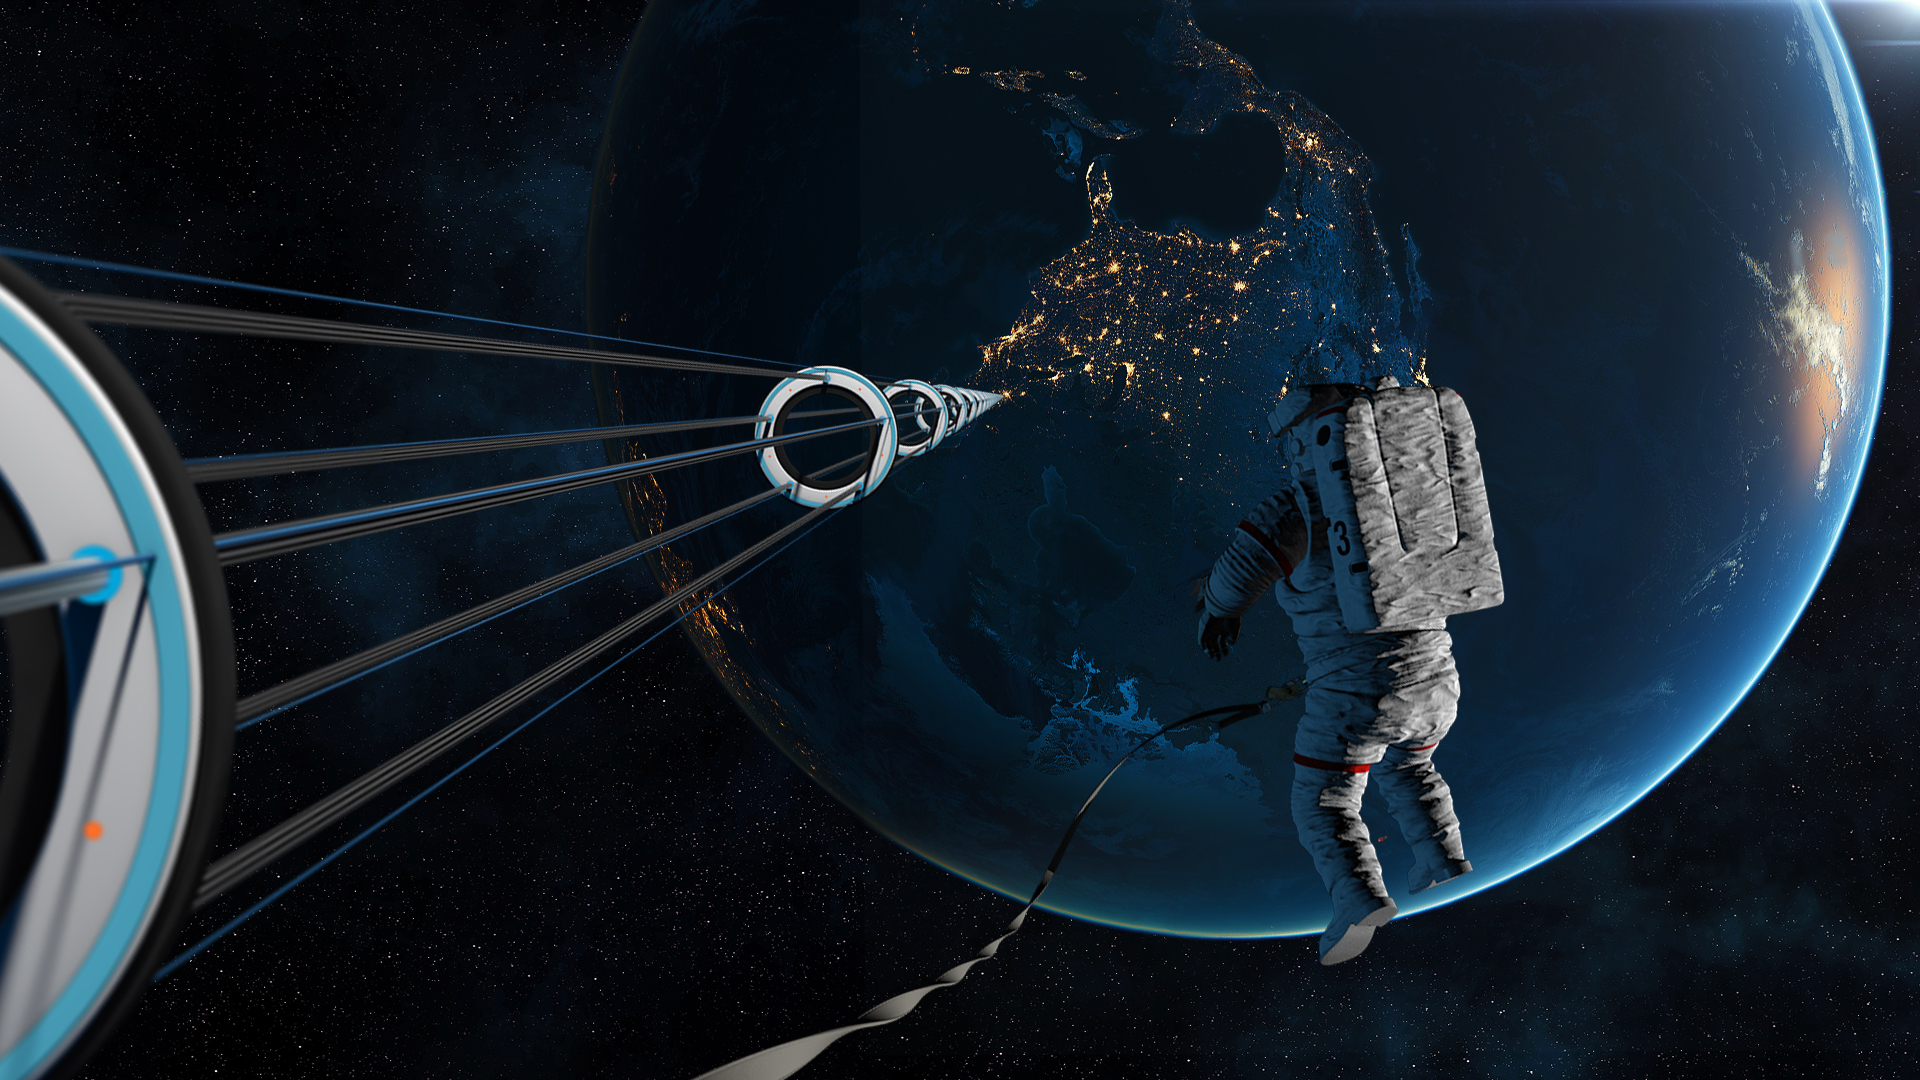 VERTEX - Experience Earth through space and timeComing soon